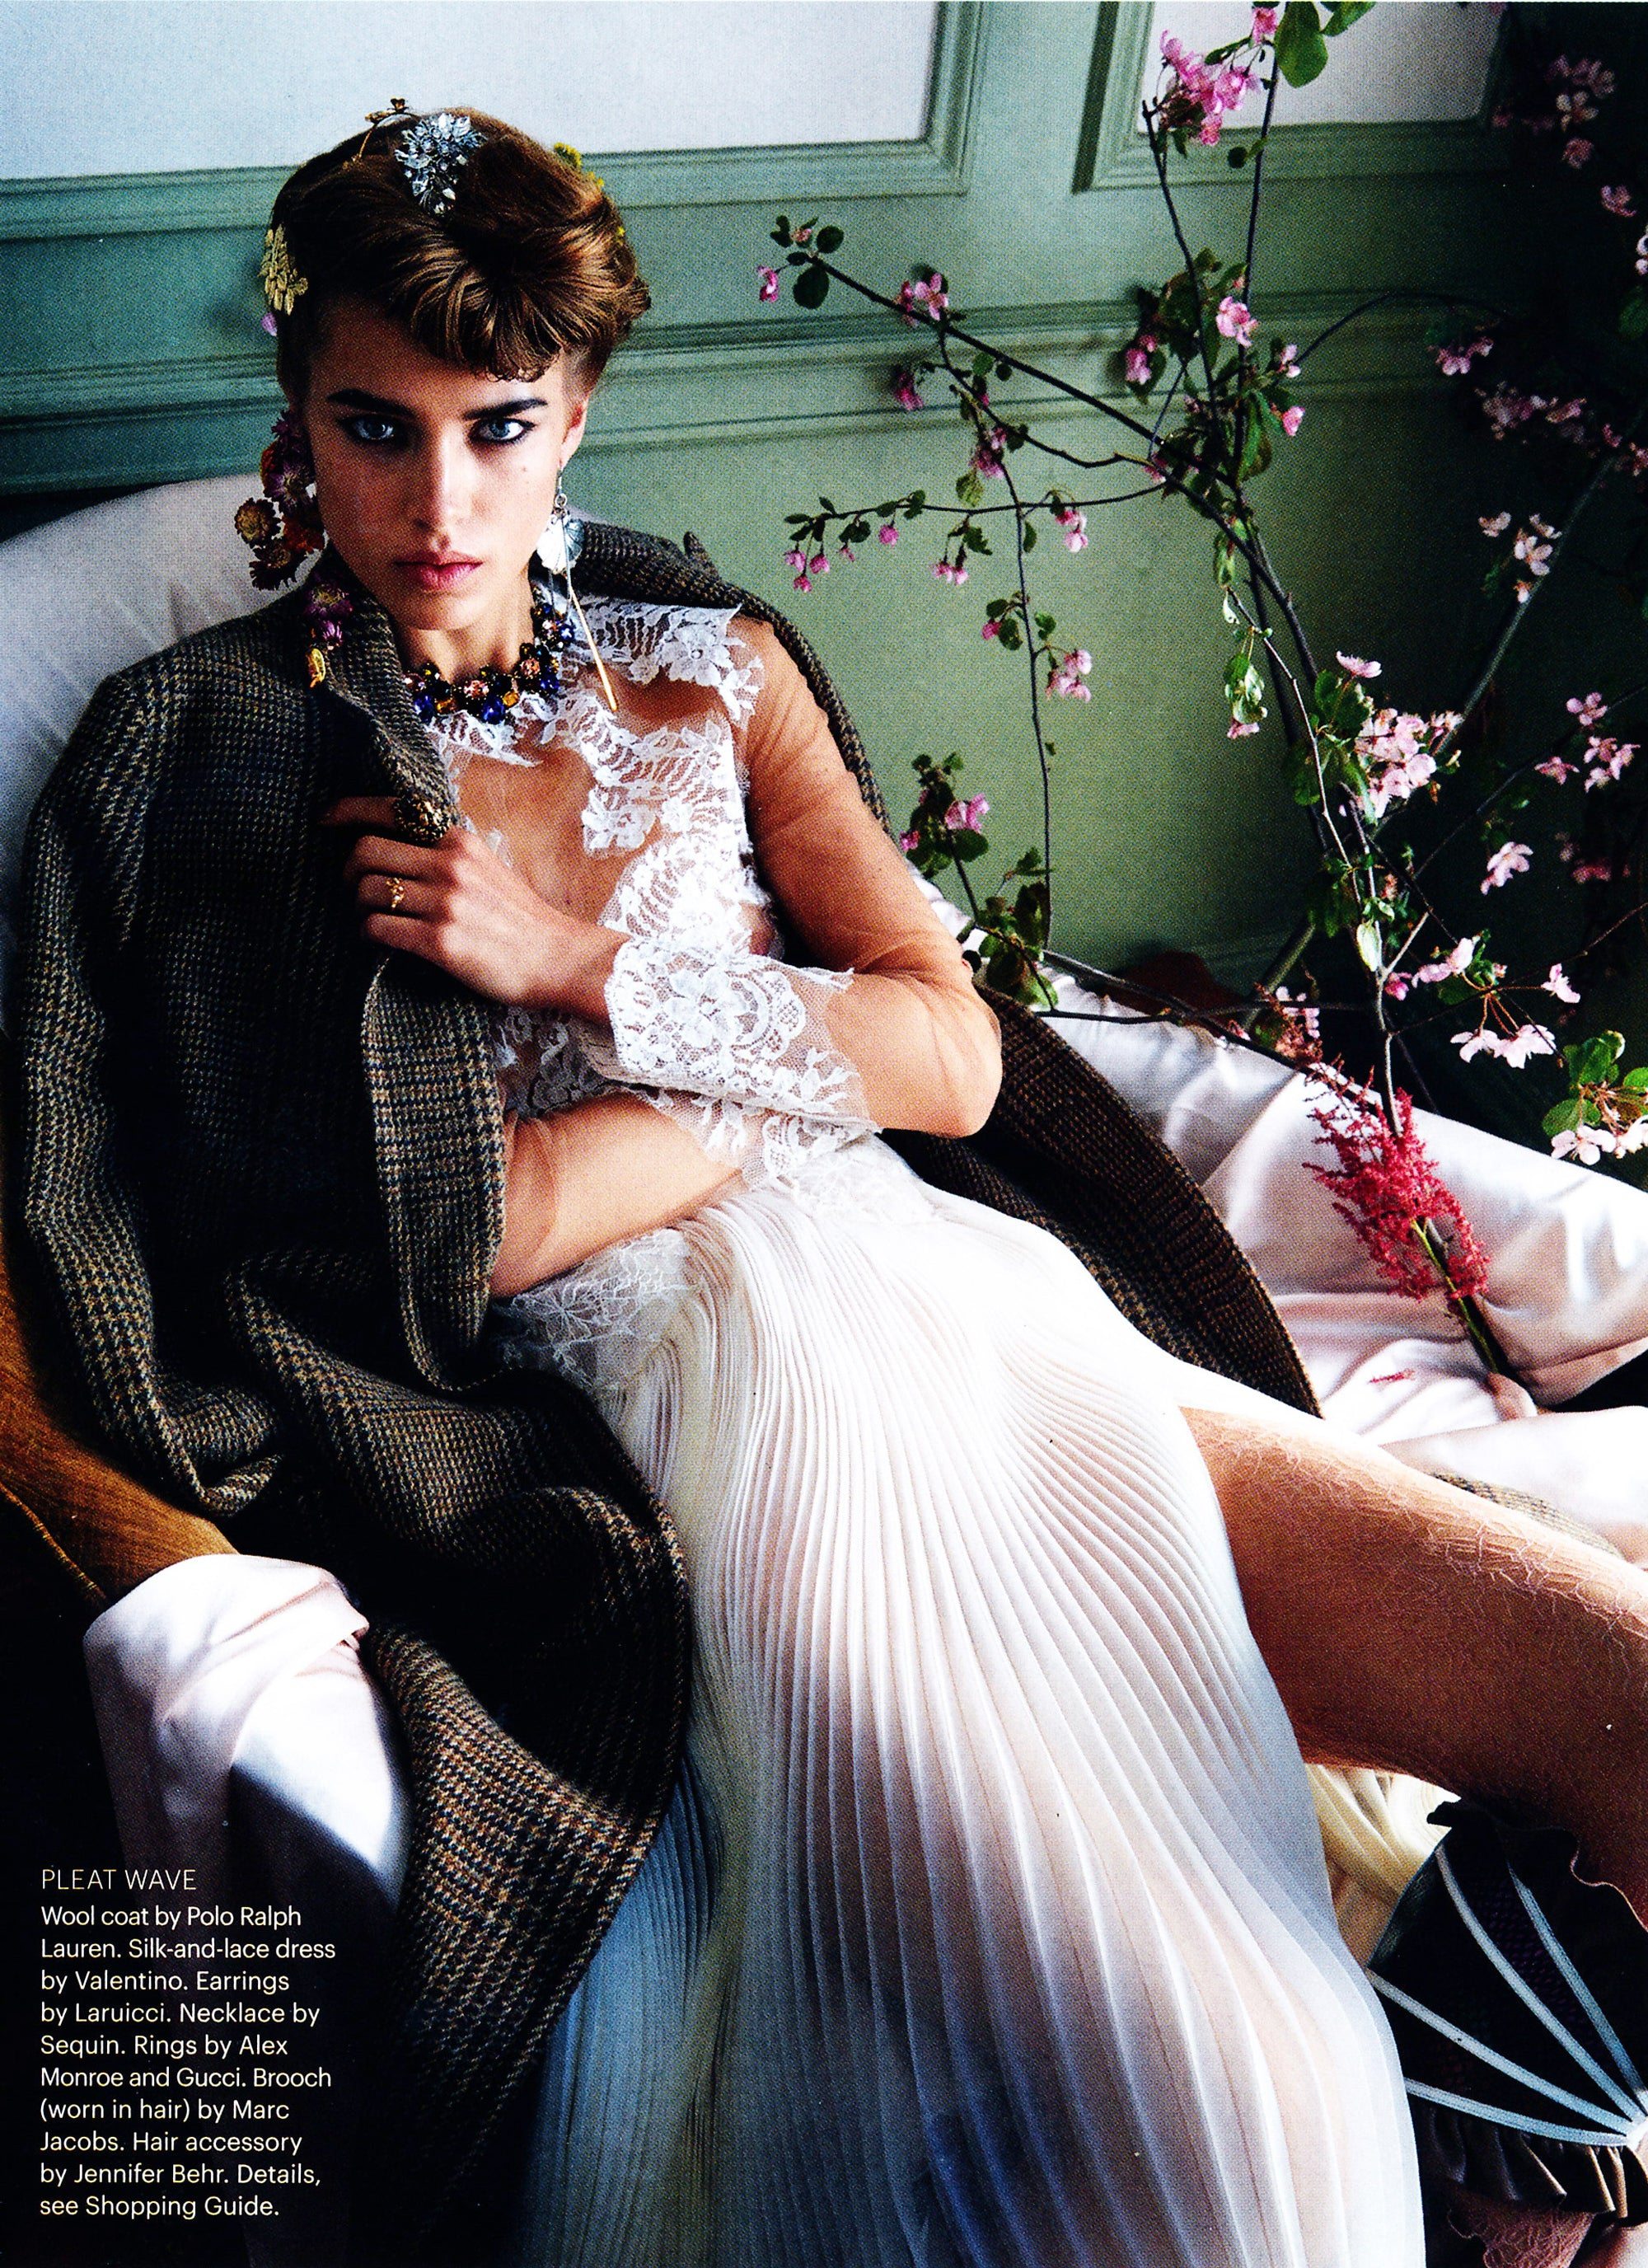 Sequin Necklace featured in the August issue of Allure